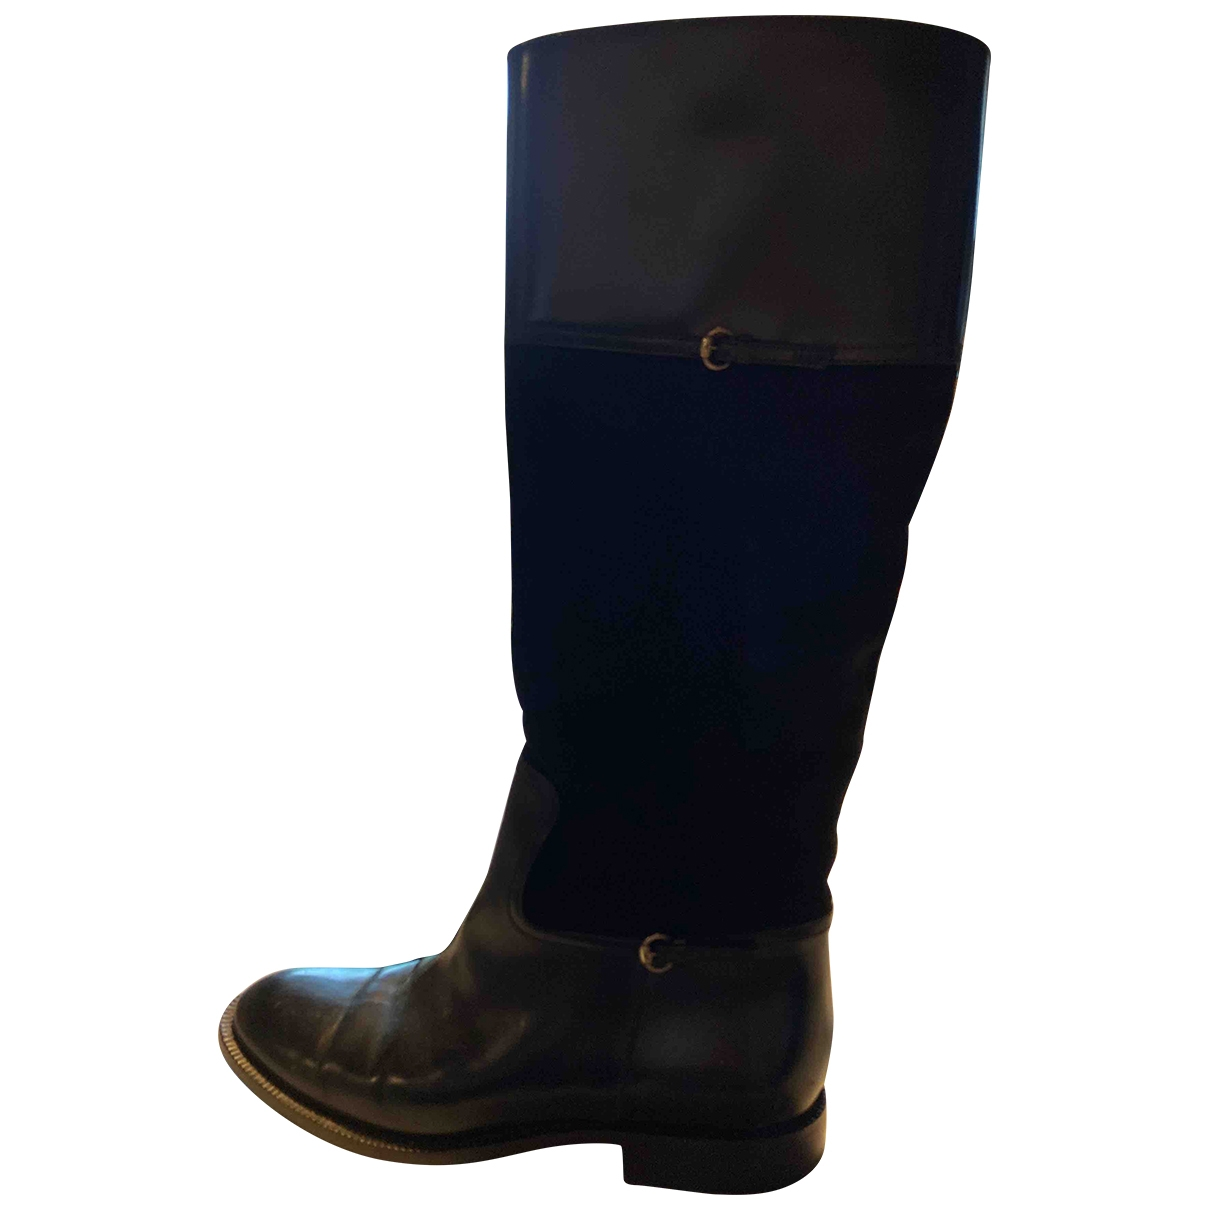 Gucci \N Black Leather Boots for Women 36 EU